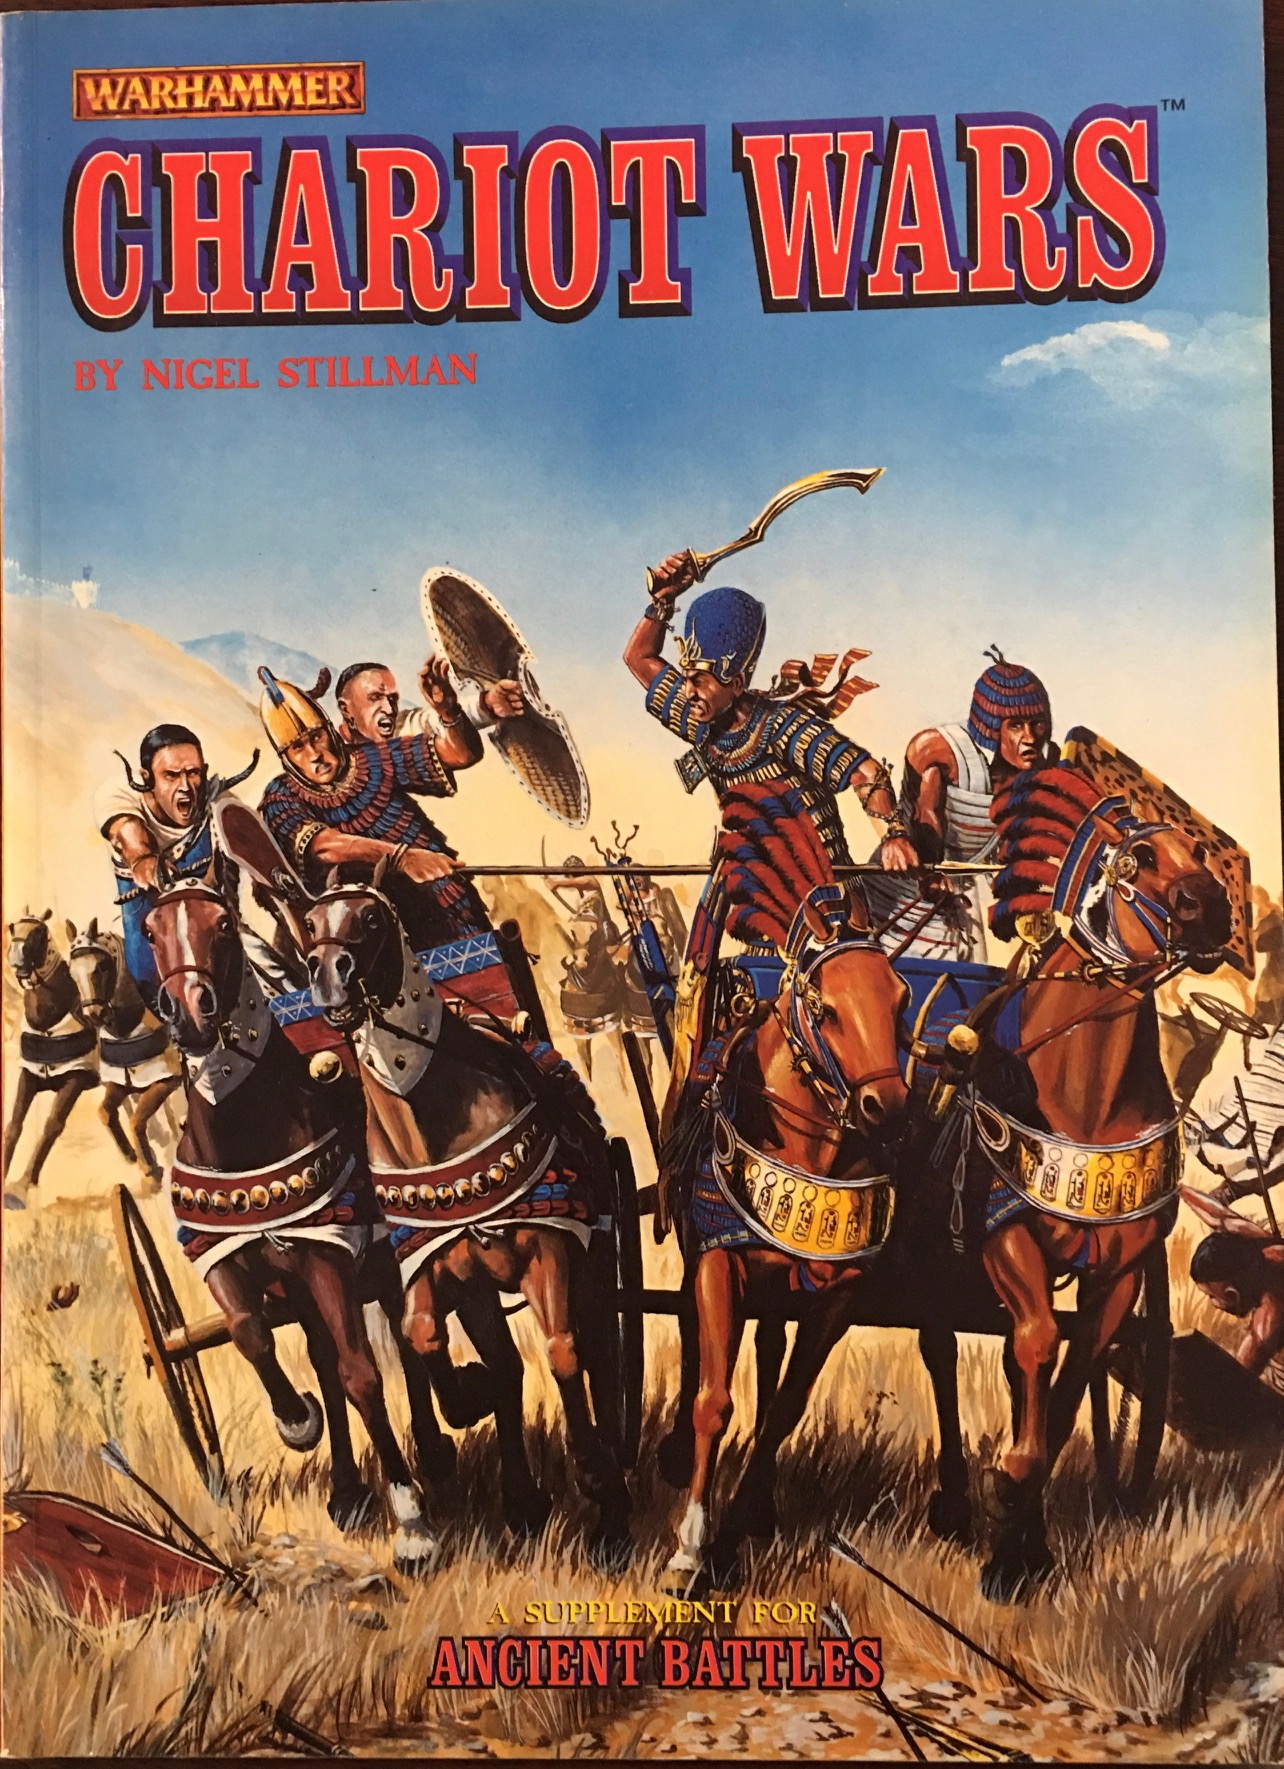 Image for Chariot Wars (A Supplement for Warhammer Ancient Battles)